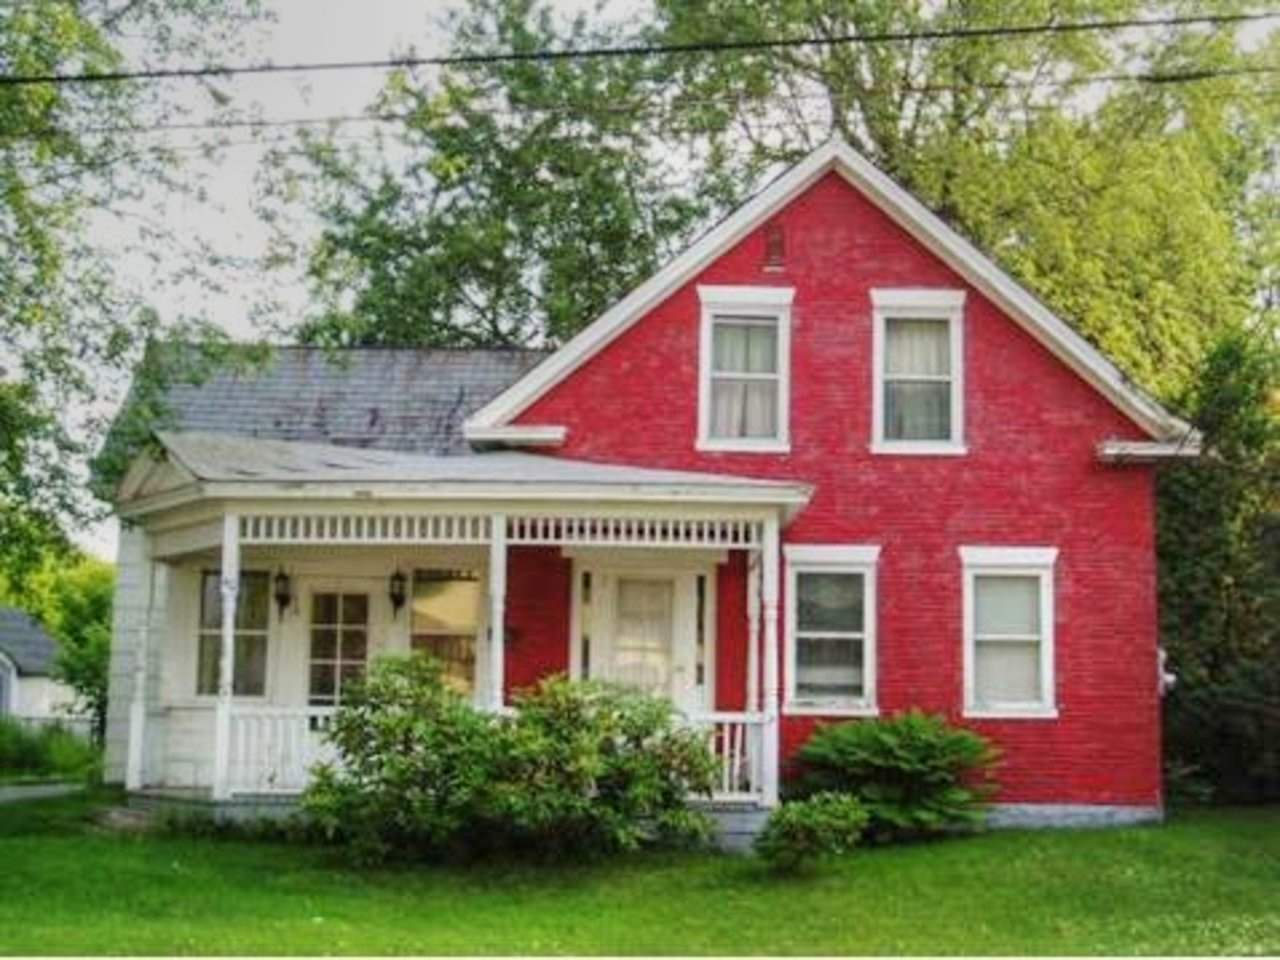 Sold property in Winooski